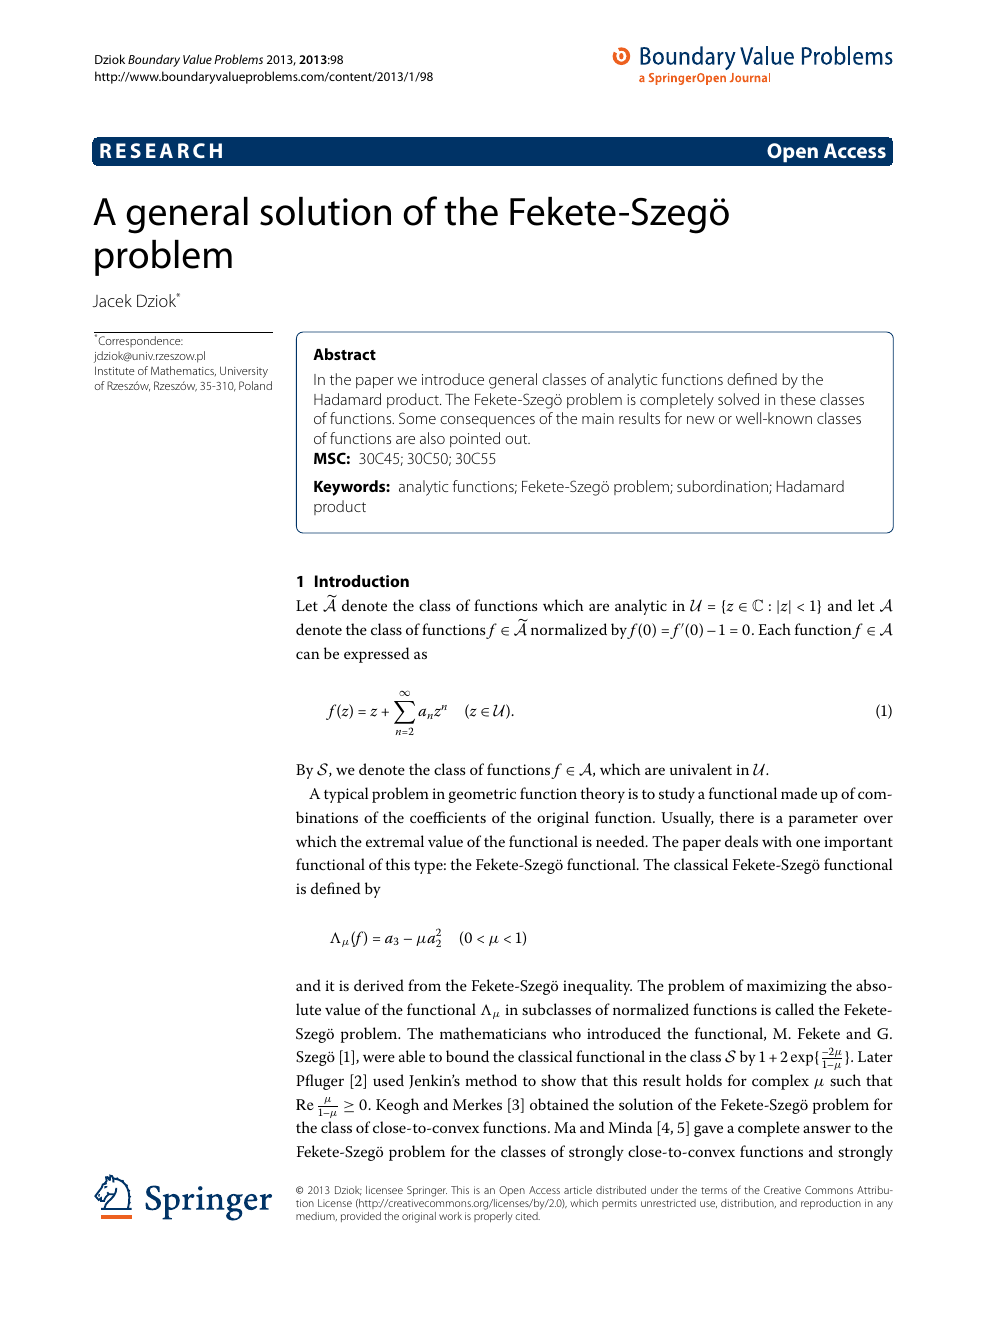 A general solution of the Fekete-Szegö problem – topic of research paper in  Mathematics. Download scholarly article PDF and read for free on  CyberLeninka open science hub.